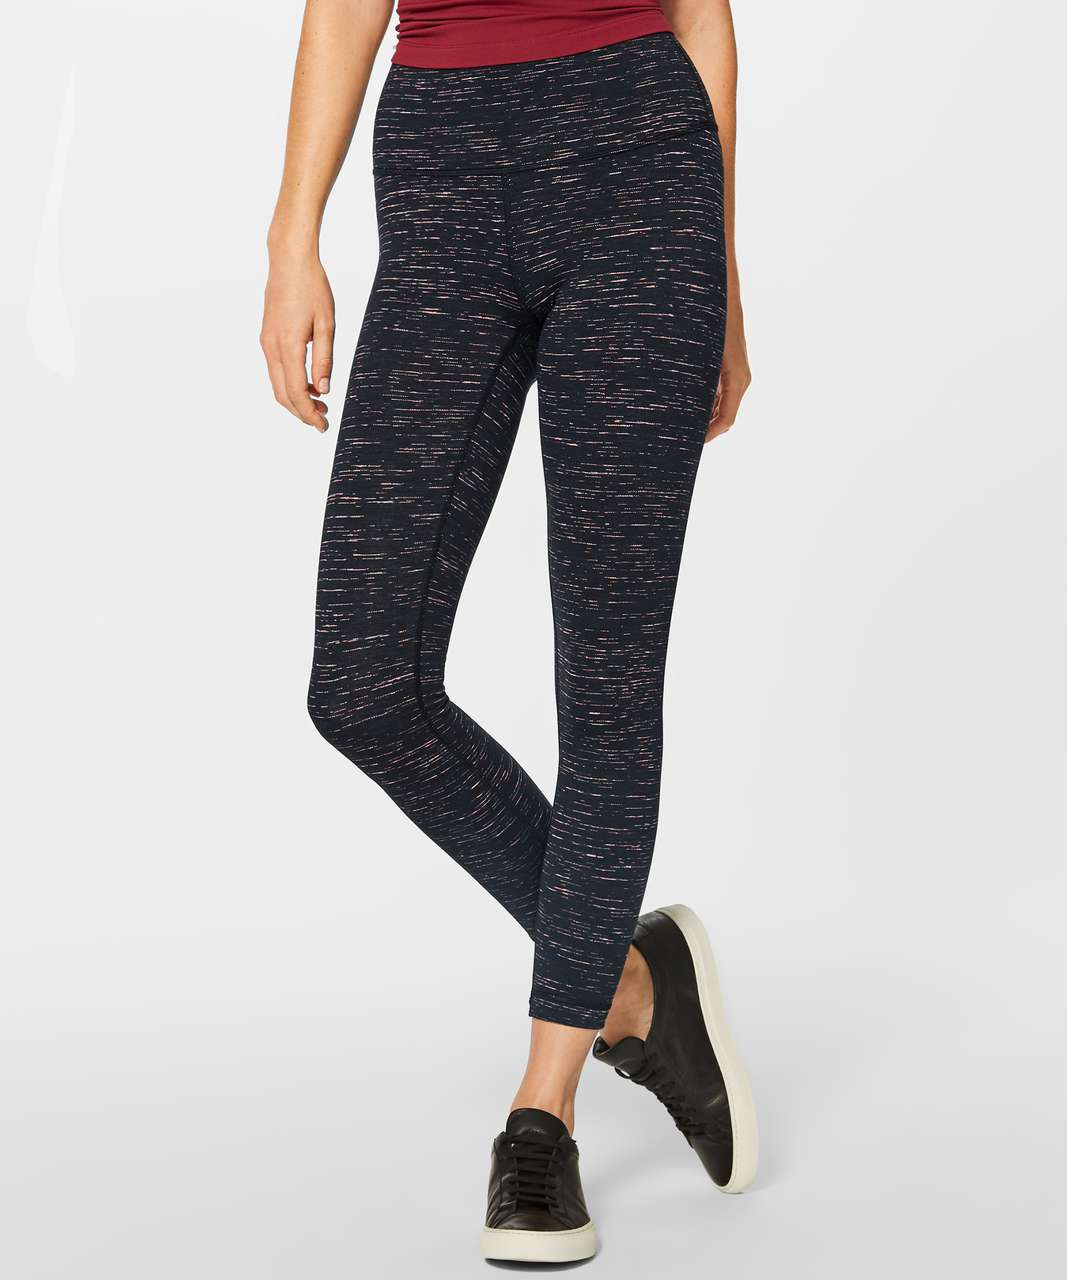 "Lululemon Wunder Under Hi-Rise 7/8 Tight (25"") - Luon Warp Speed Filtered Orange Electric Coral"